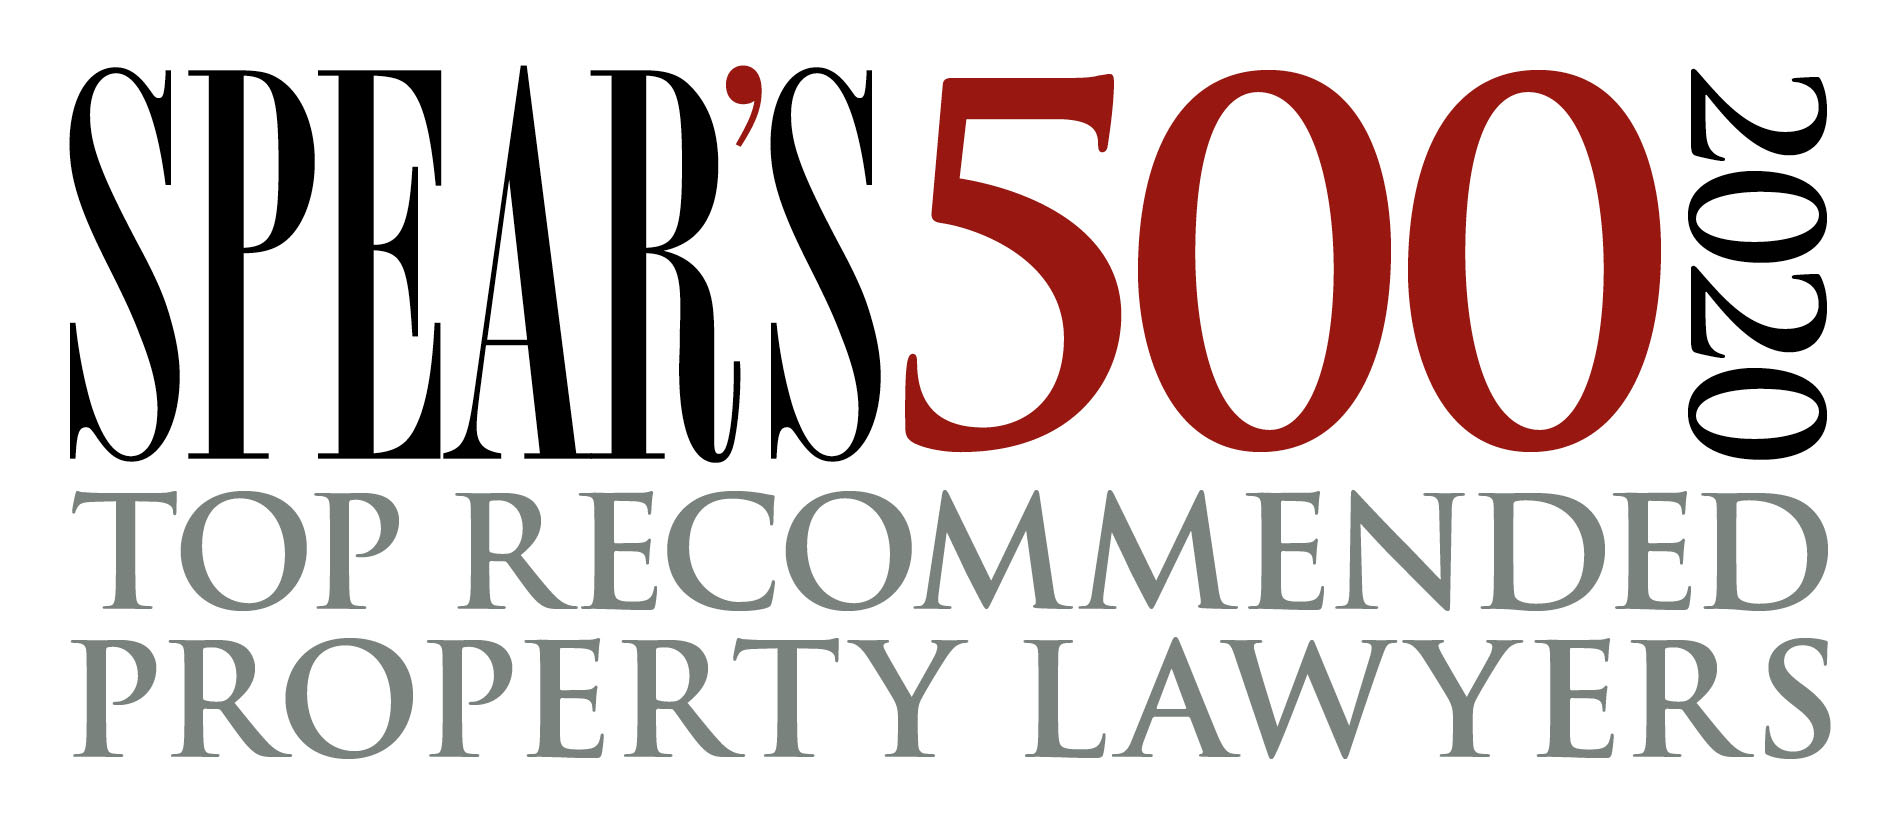 Spear's 500 2020 Top recommended property lawyers